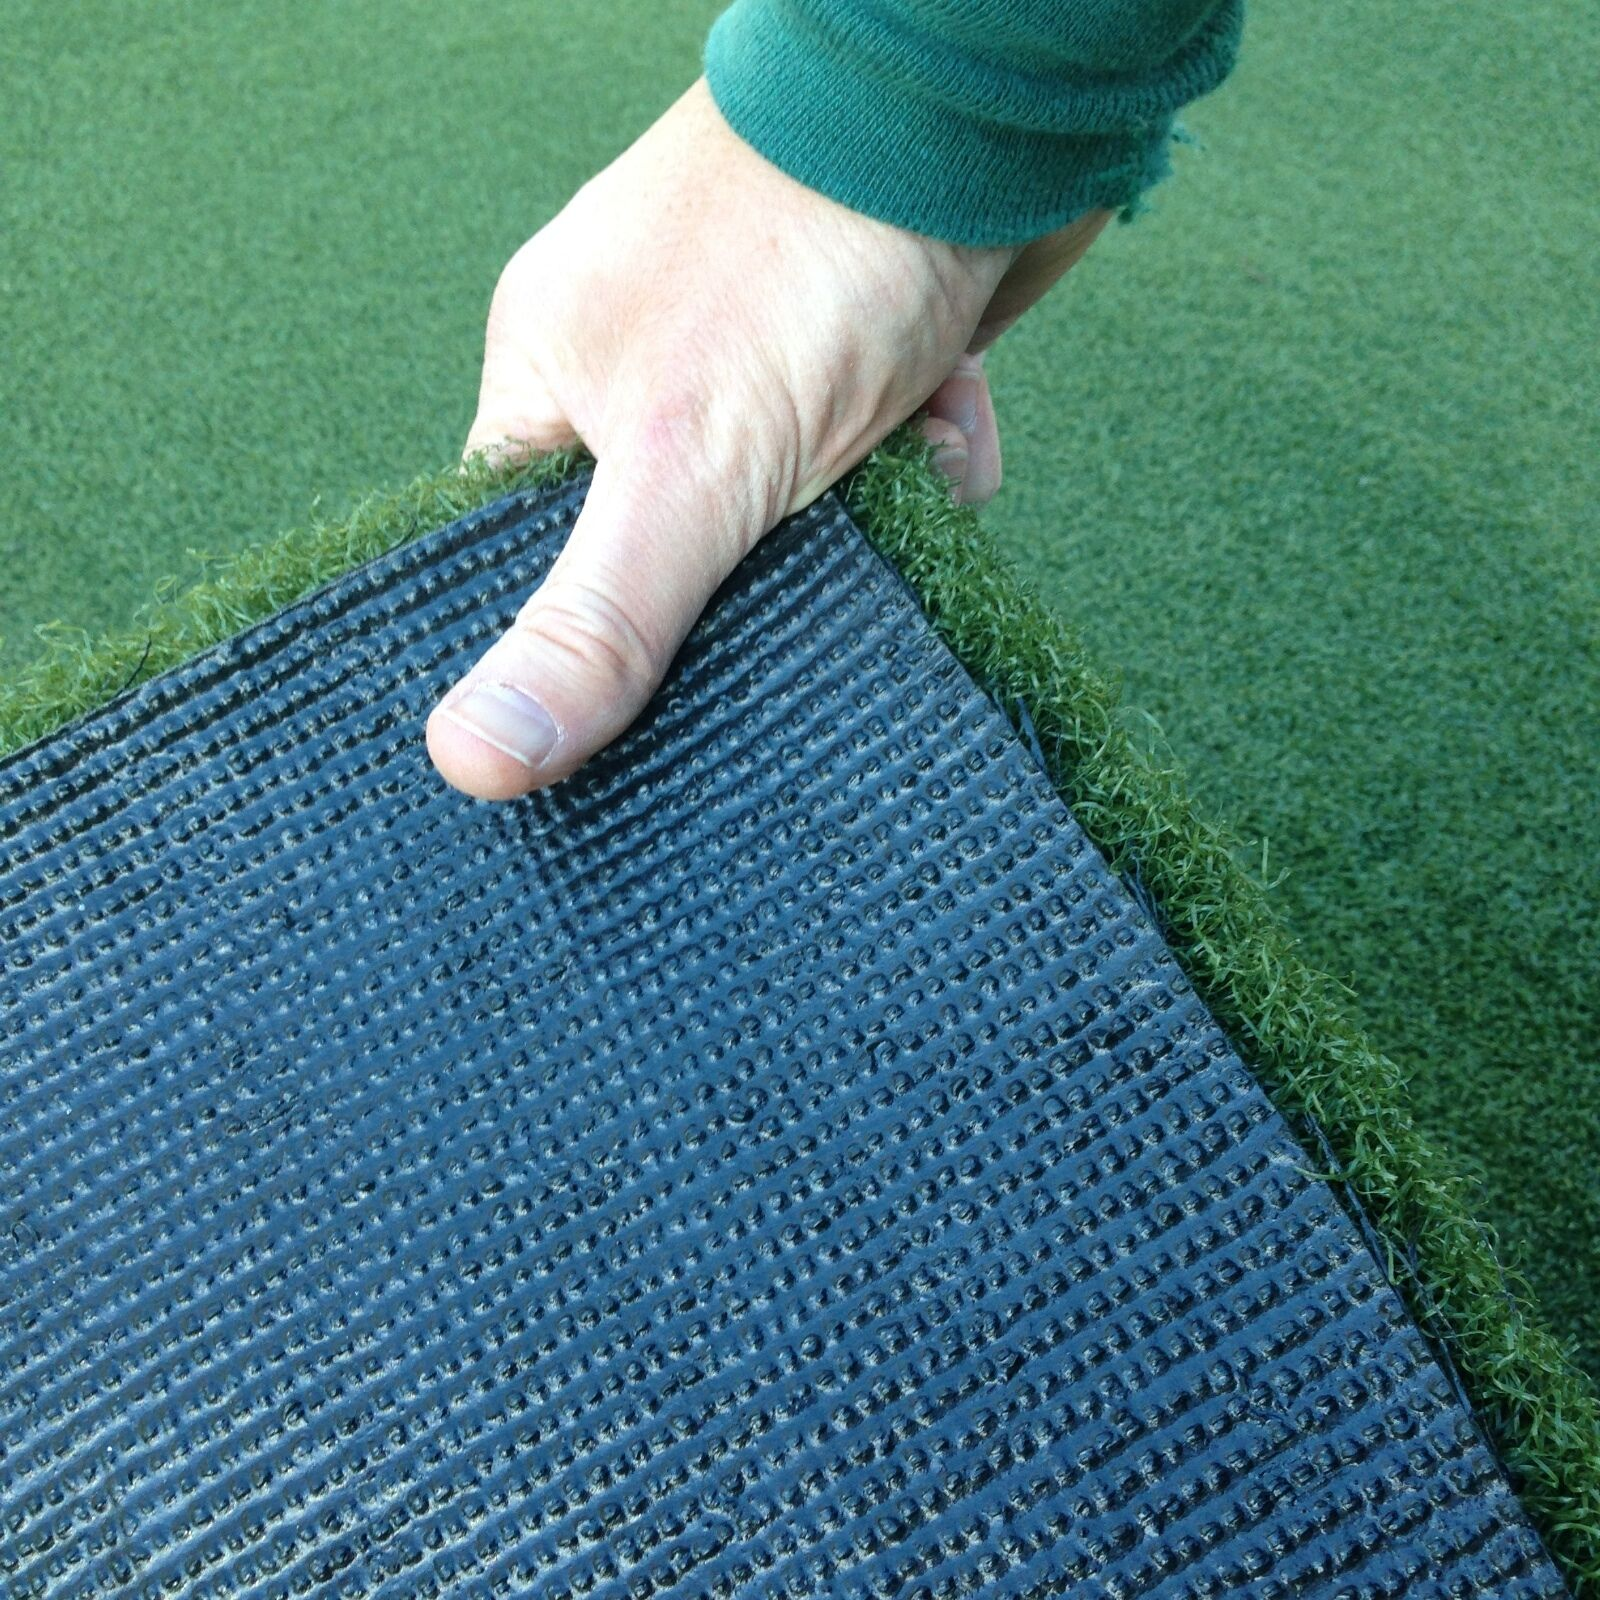 Top Large Golf Mat - 4' x 7' Premium Golf Practice Turf Mat - The Golfing Eagles